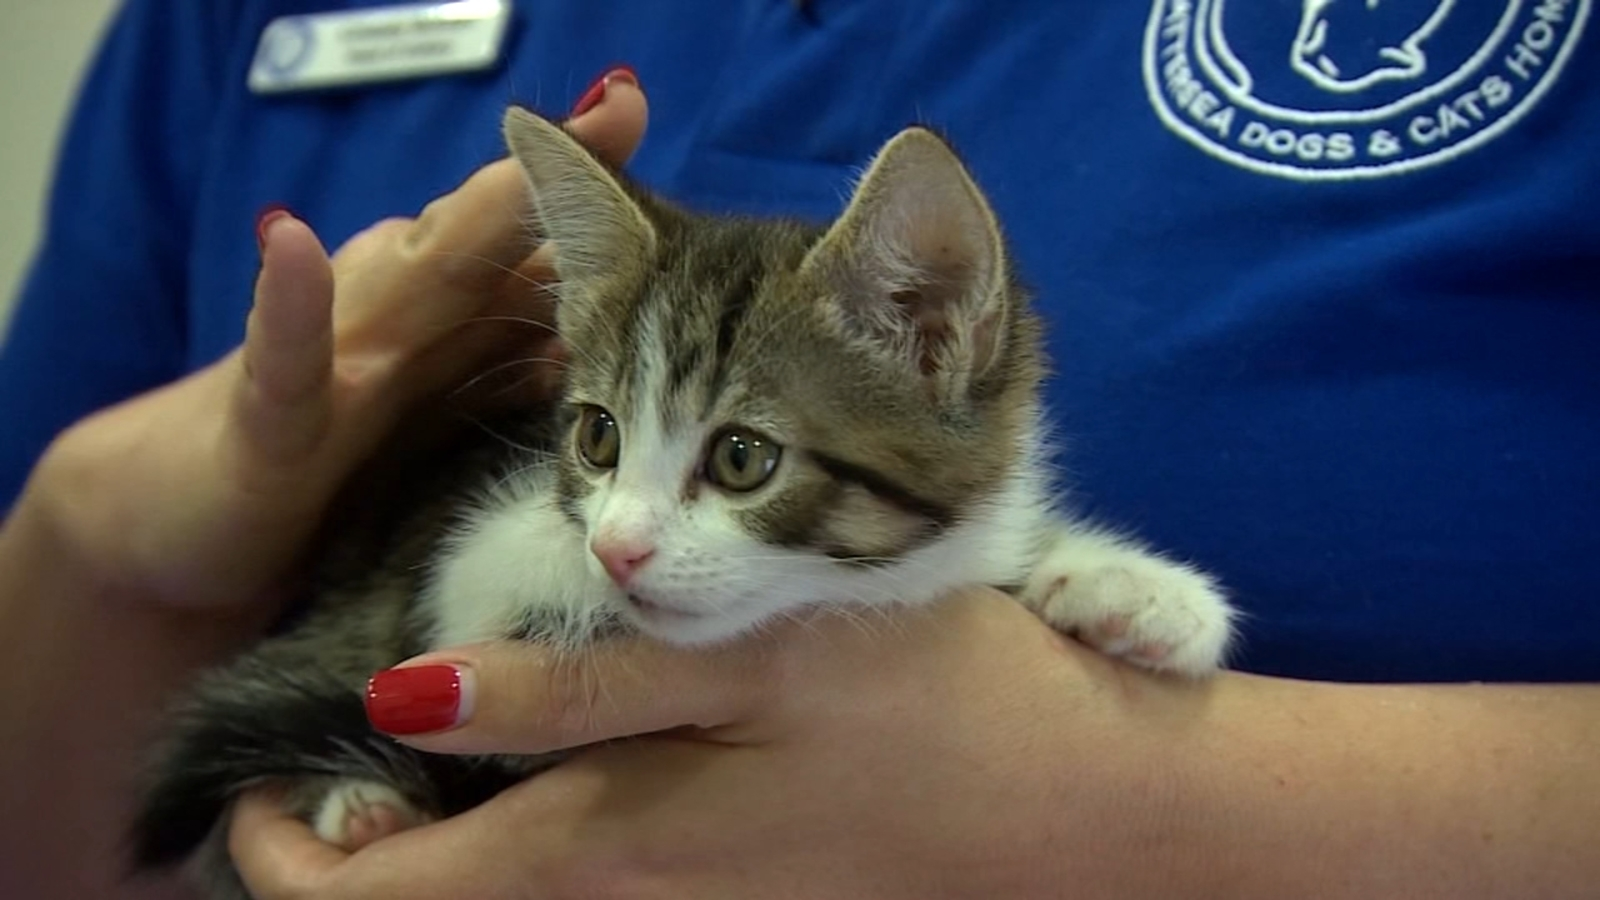 Get your cat vaccinated for rabies, say Fresno County health officials